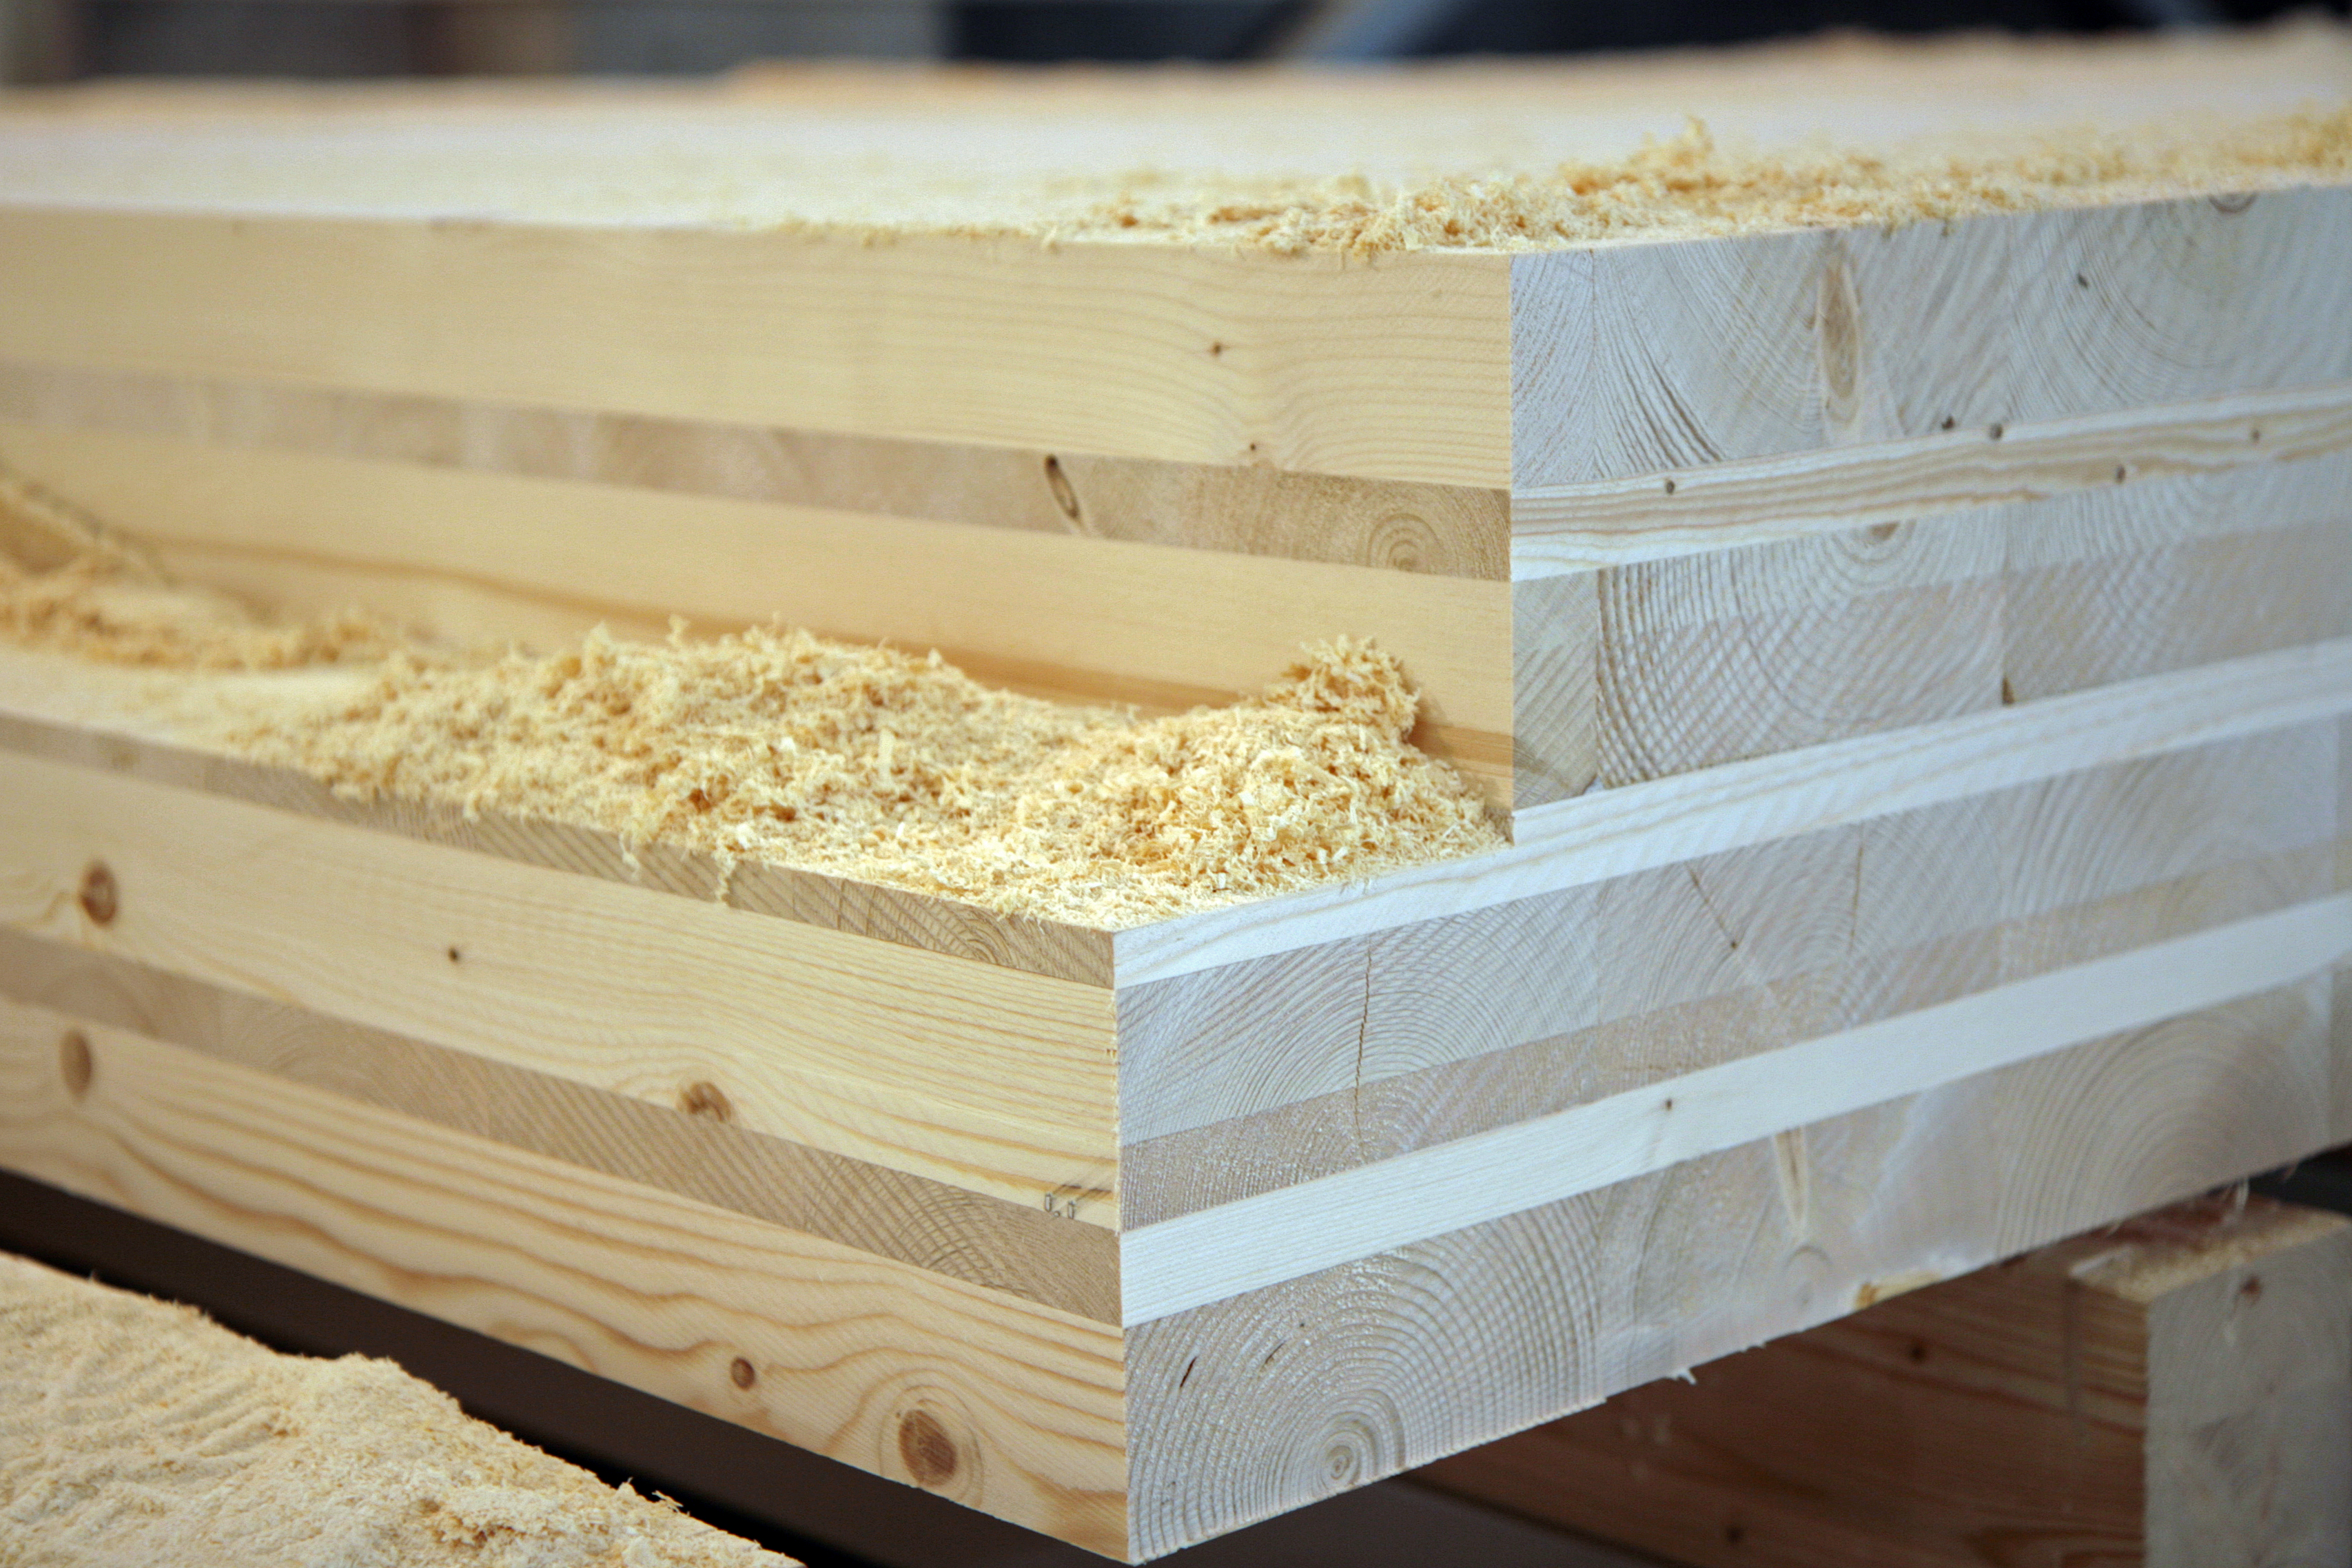 The people in Kuhmo have something unique to offer to the rest of the world: the close-grained Kainuu timber is sometimes even said to be the best in the world for sawmilling. The photo shows cross-laminated timber (CLT). Photo: Anna Kauppi